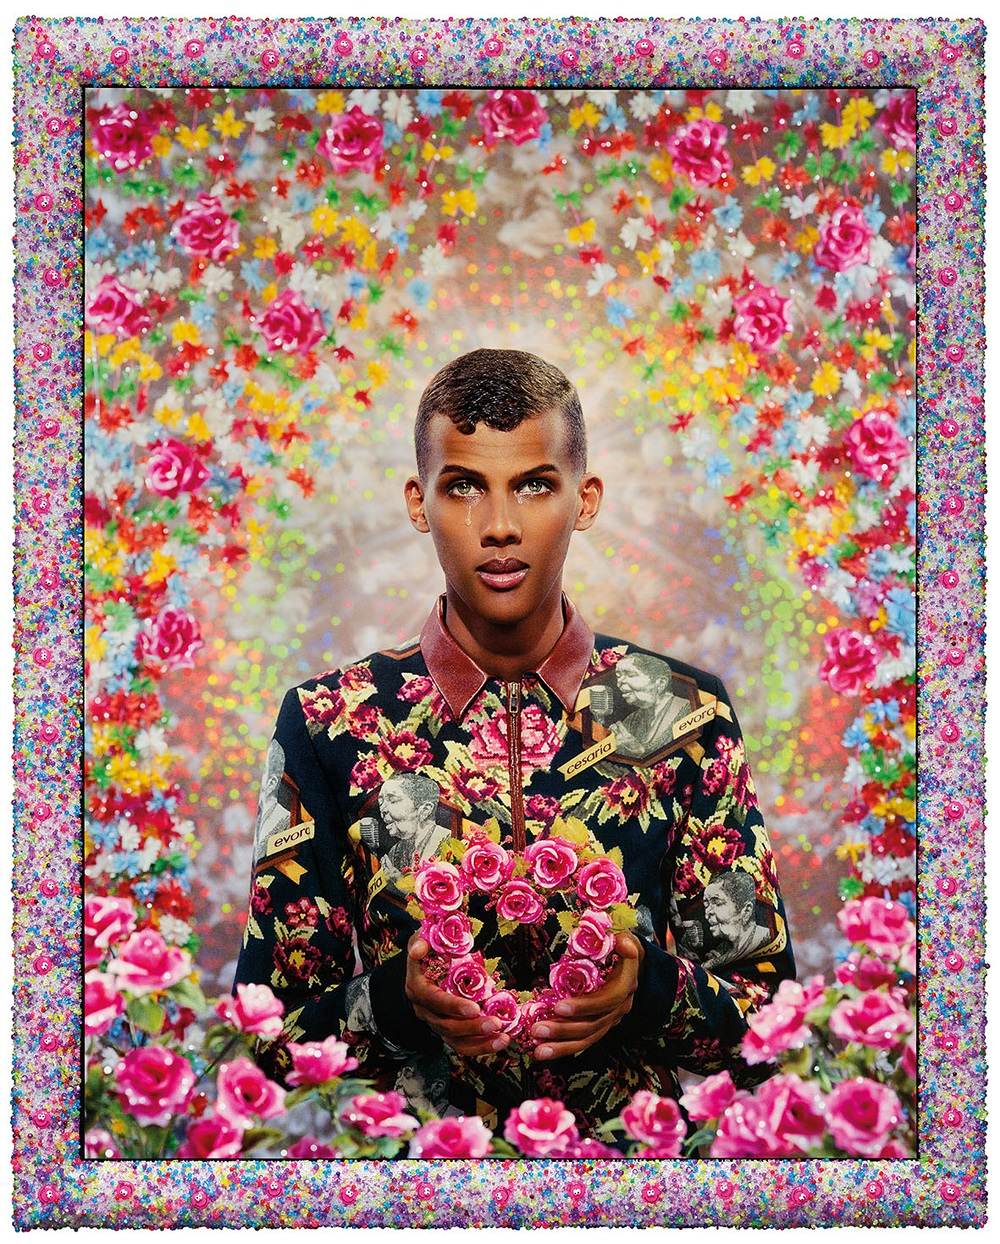 For Ever (Stromae), Stromae, Collection privée ©Pierre et Gilles